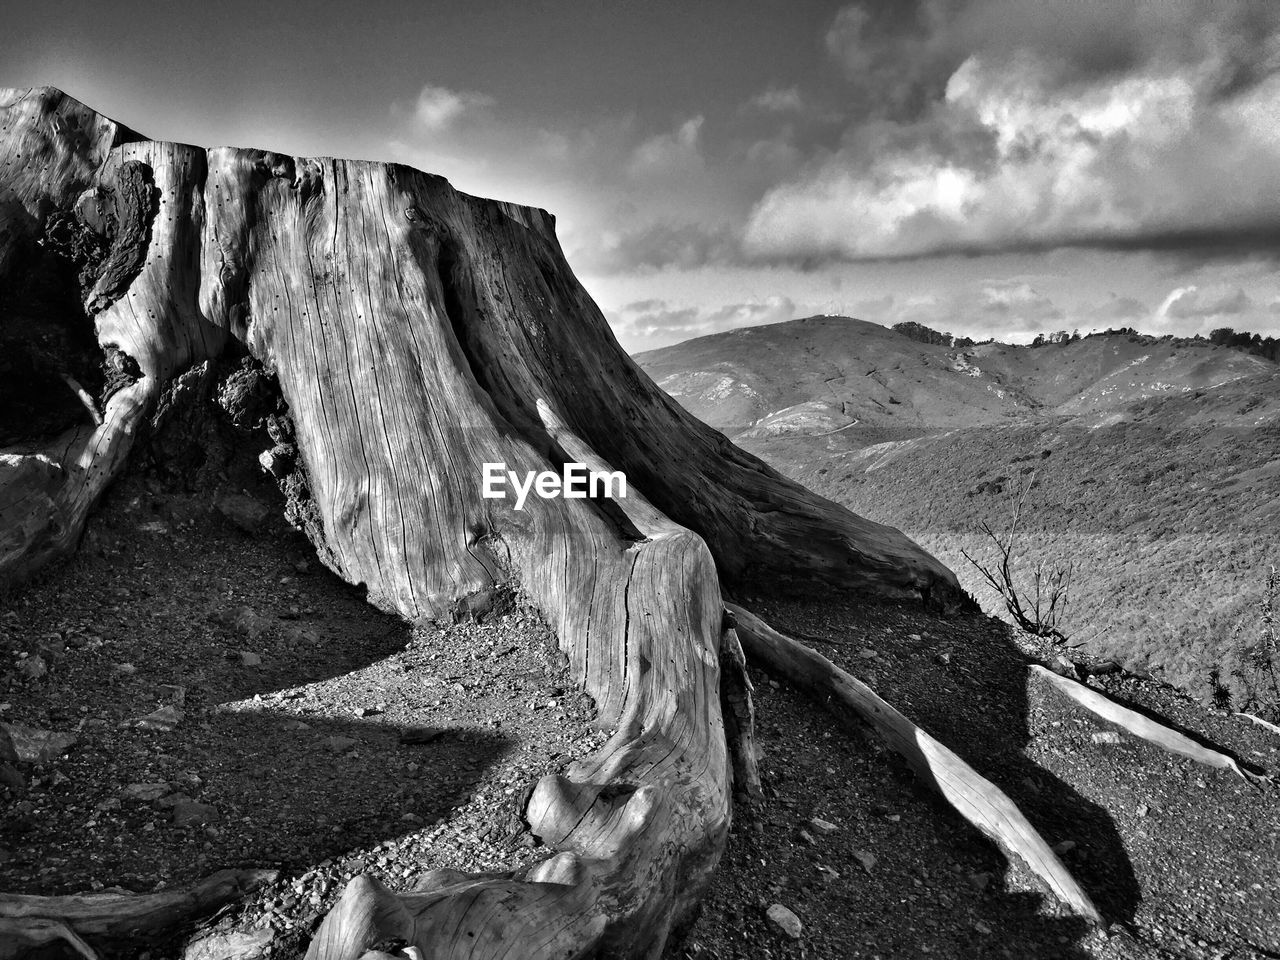 Close-Up Of Tree Stump On Mountain Against Sky